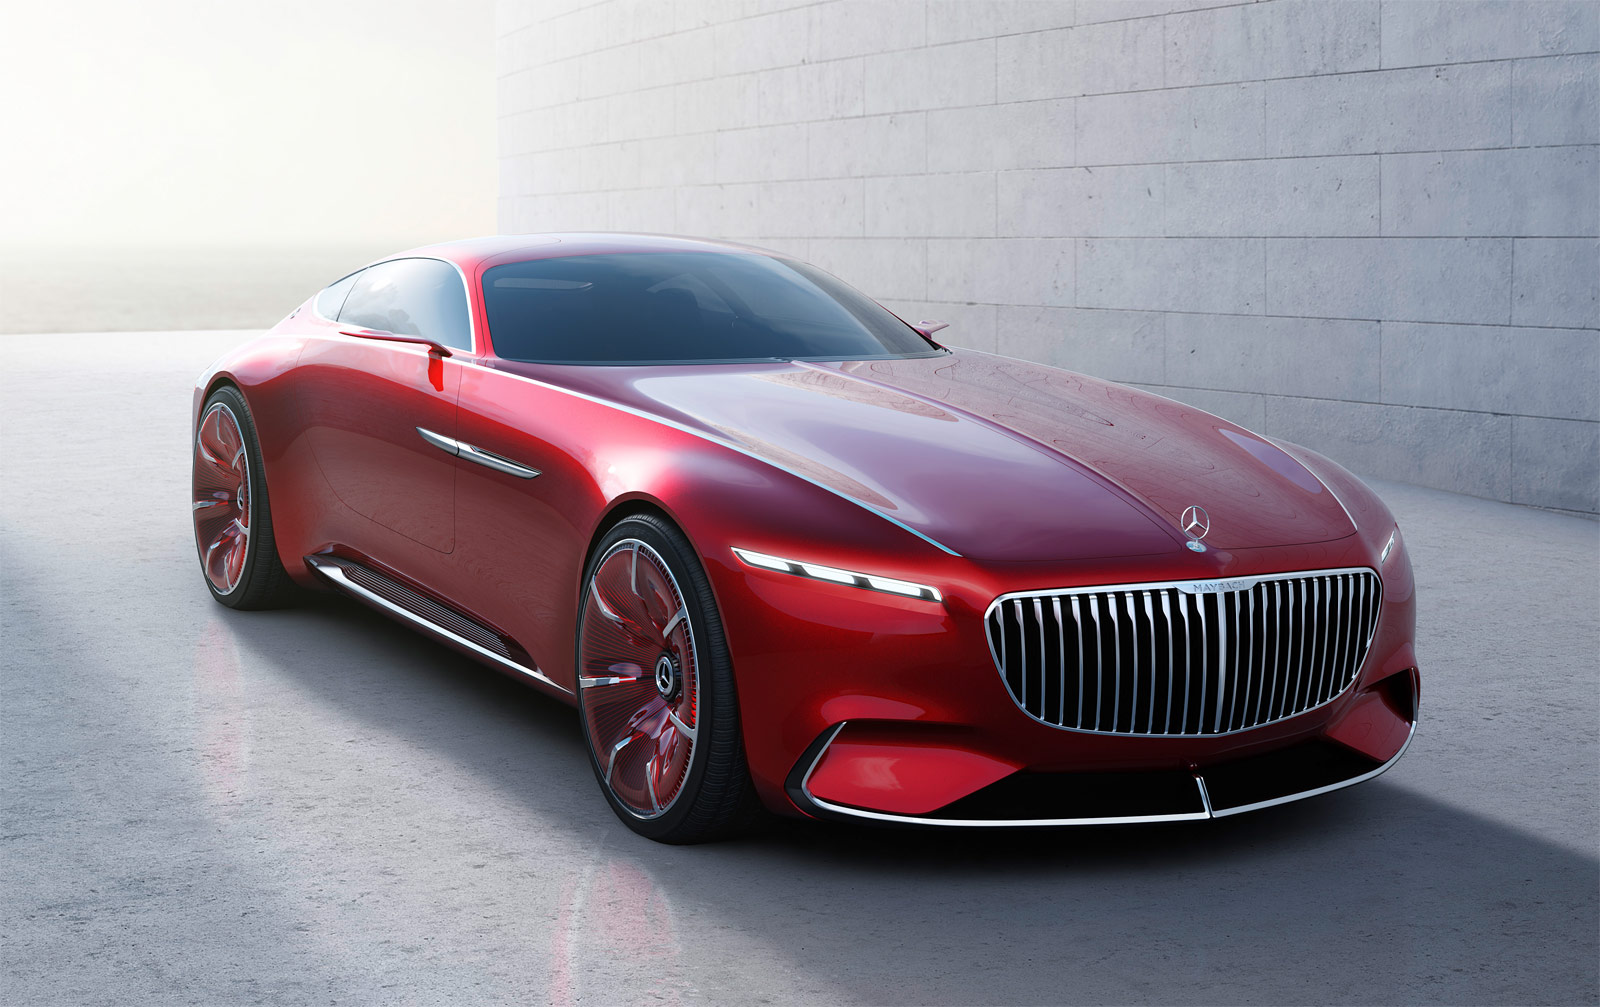 The Vision Mercedes-Maybach 6 – A Synthesis Of Intelligence And Emotion